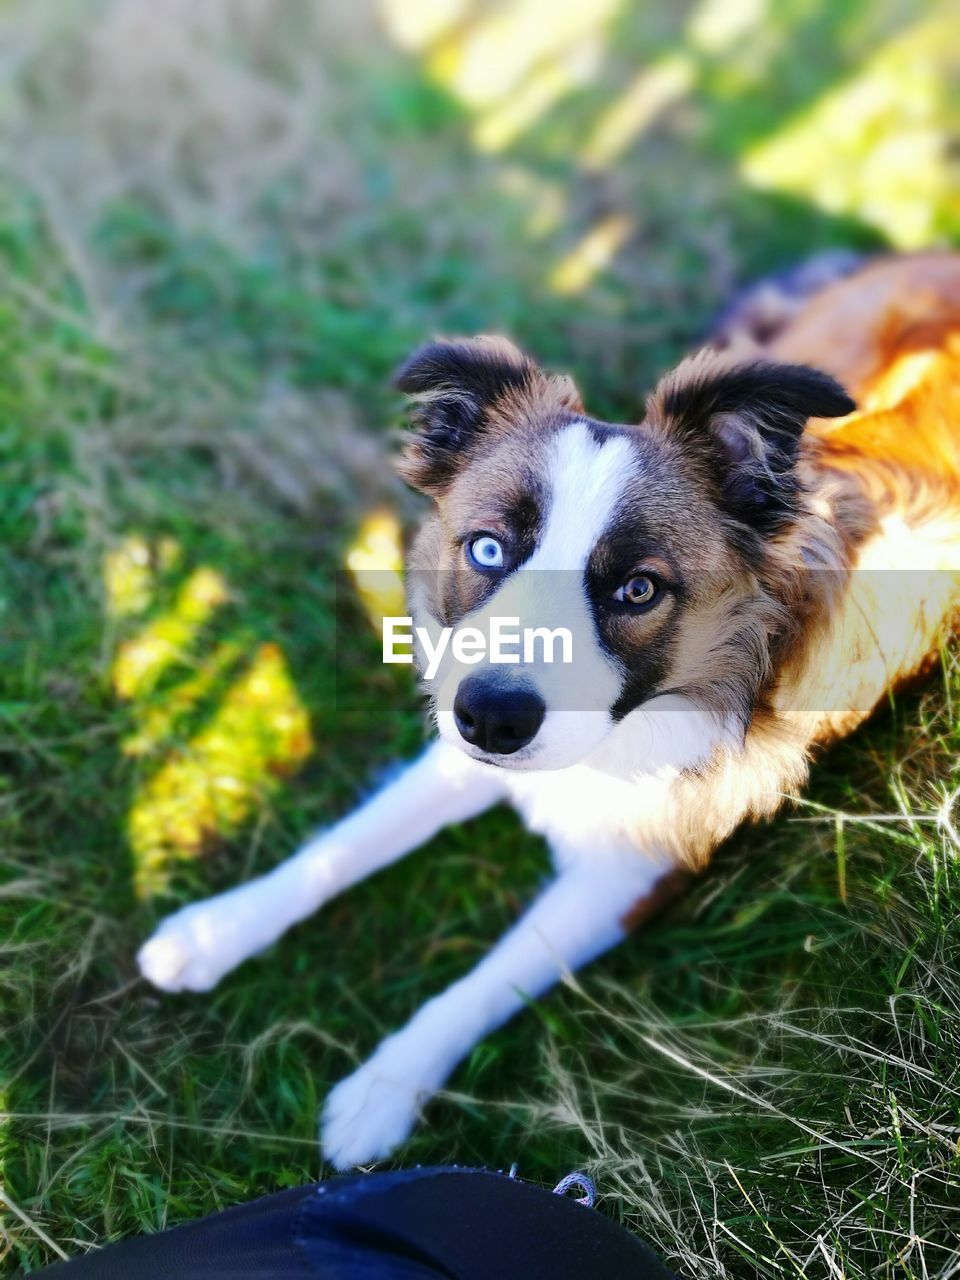 one animal, mammal, canine, domestic, dog, domestic animals, pets, animal themes, animal, vertebrate, grass, field, plant, land, nature, looking at camera, day, portrait, no people, selective focus, outdoors, animal head